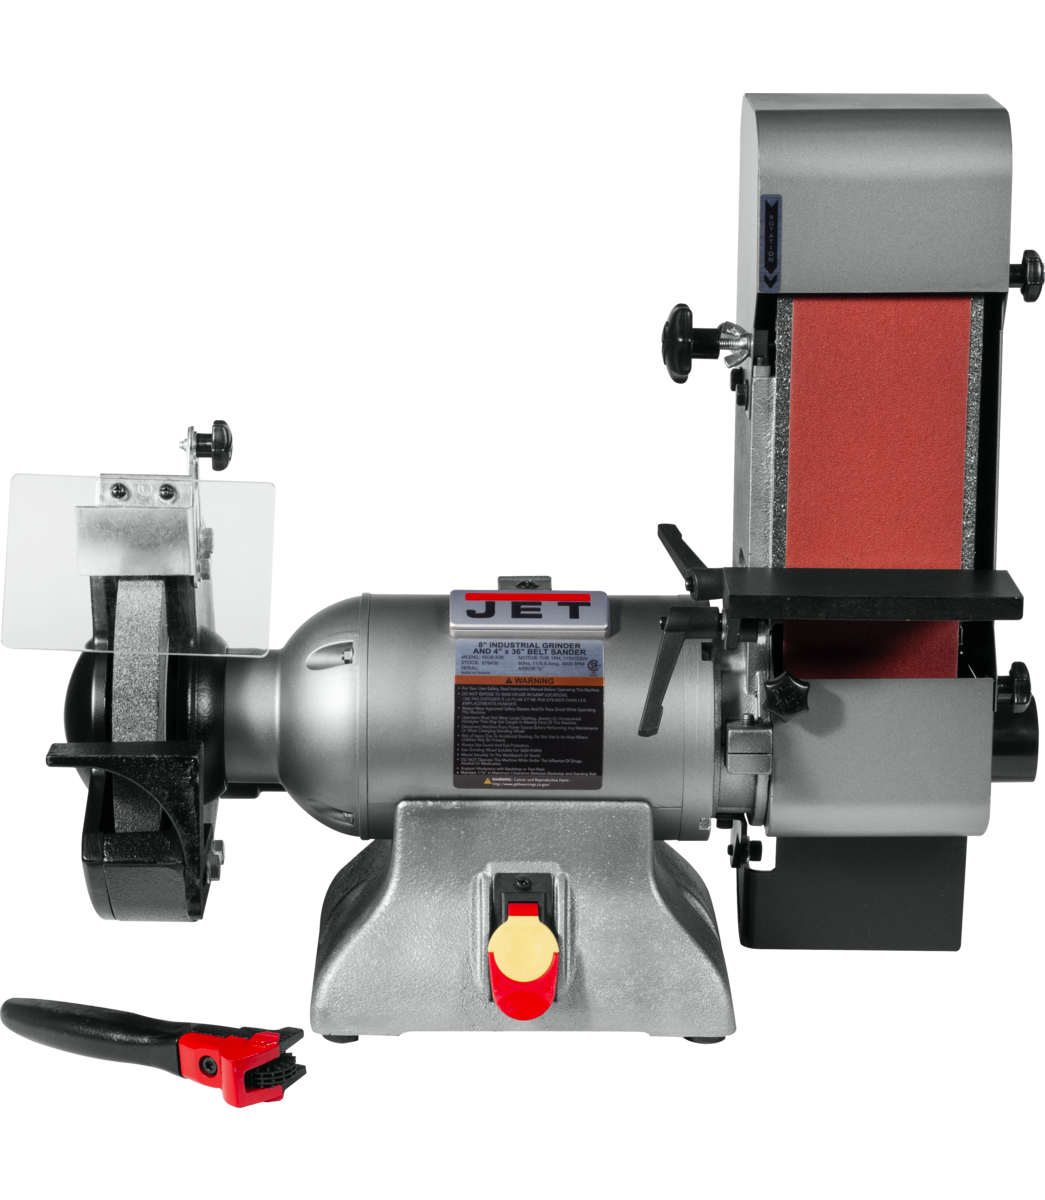 IBGB-436 8-Inch Industrial Grinder and  4 x 36 Belt Sander